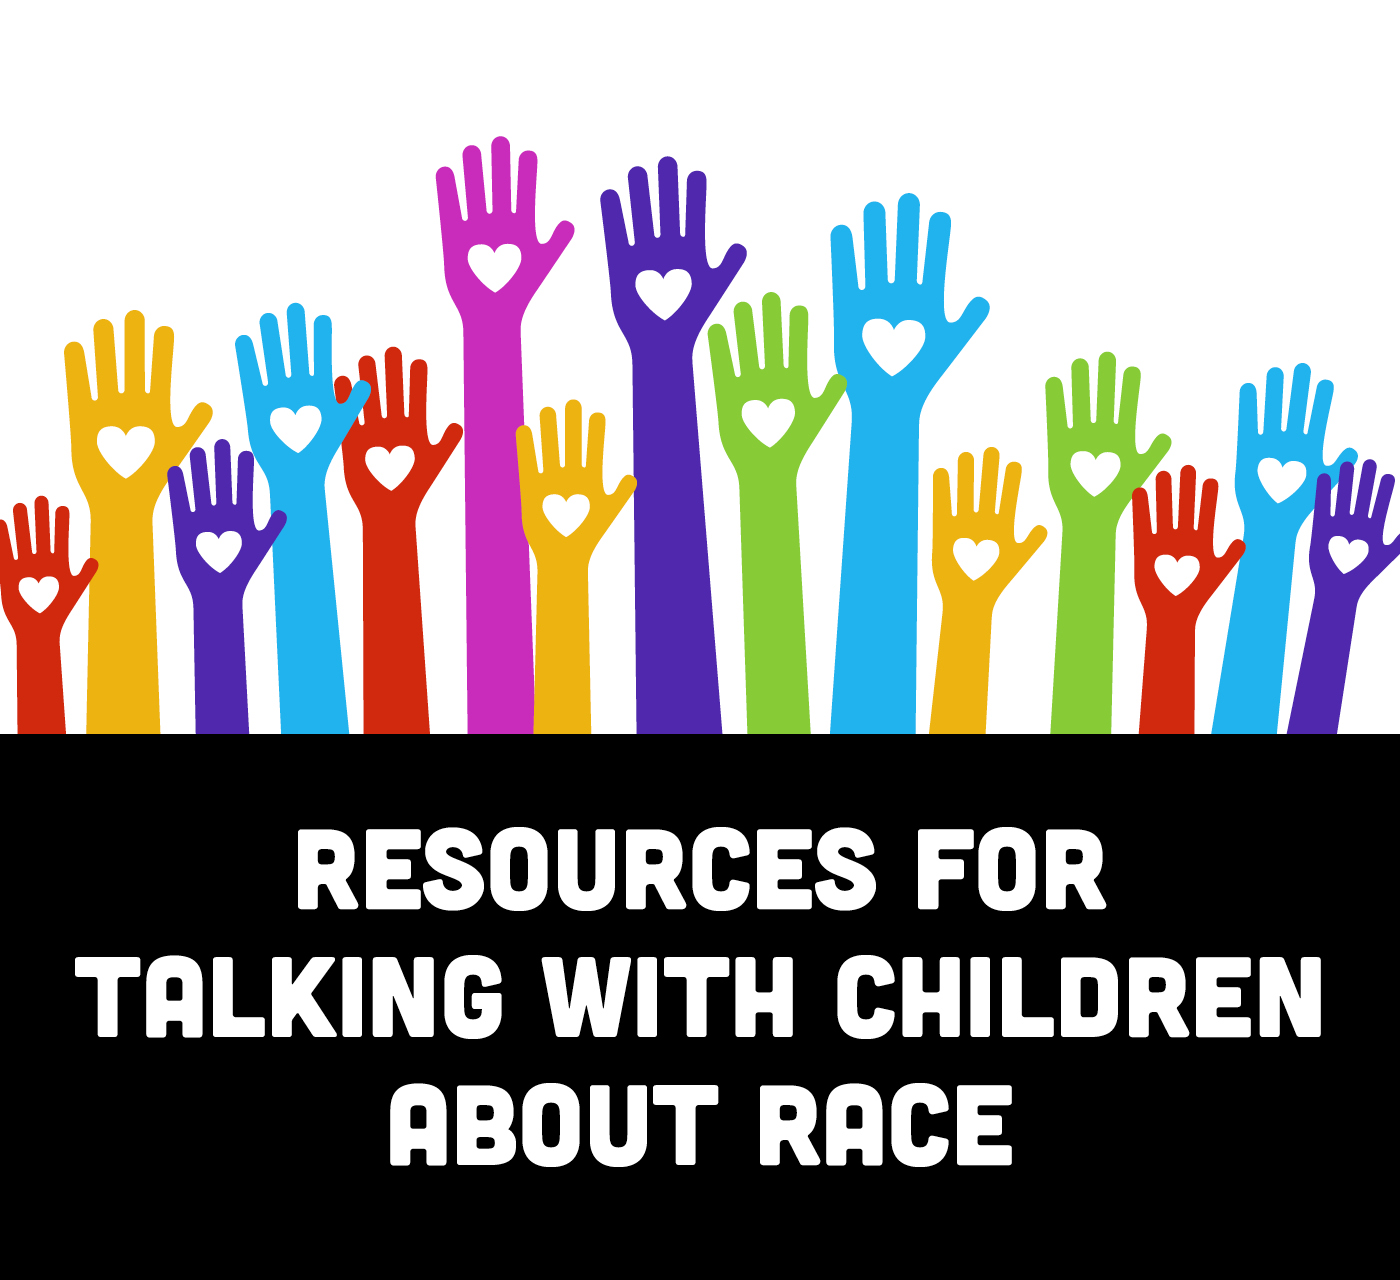 Resources for Talking with Children About Race